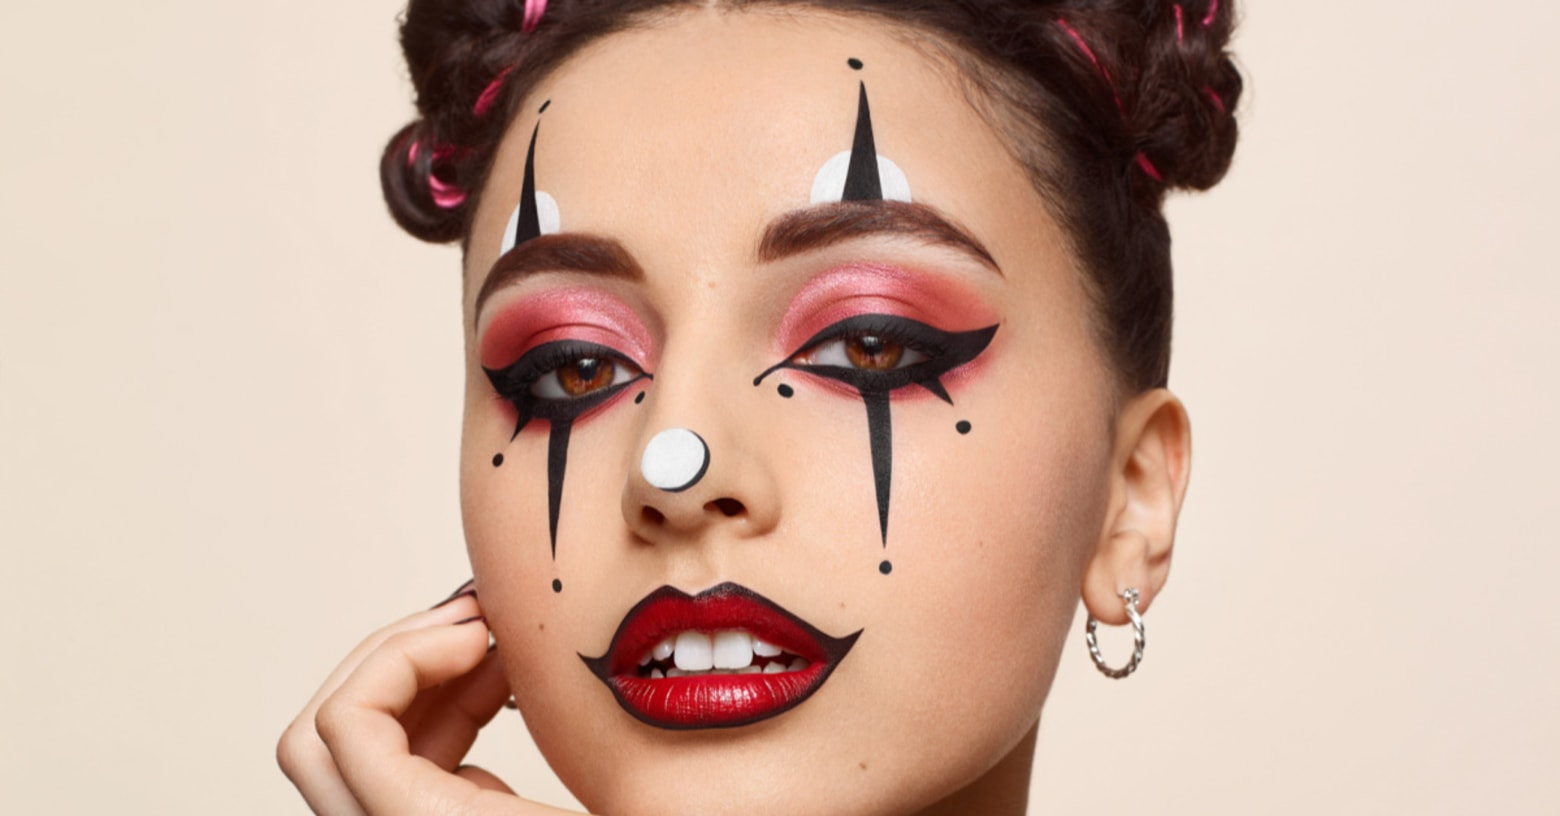 Clown Makeup Is Scarily Good